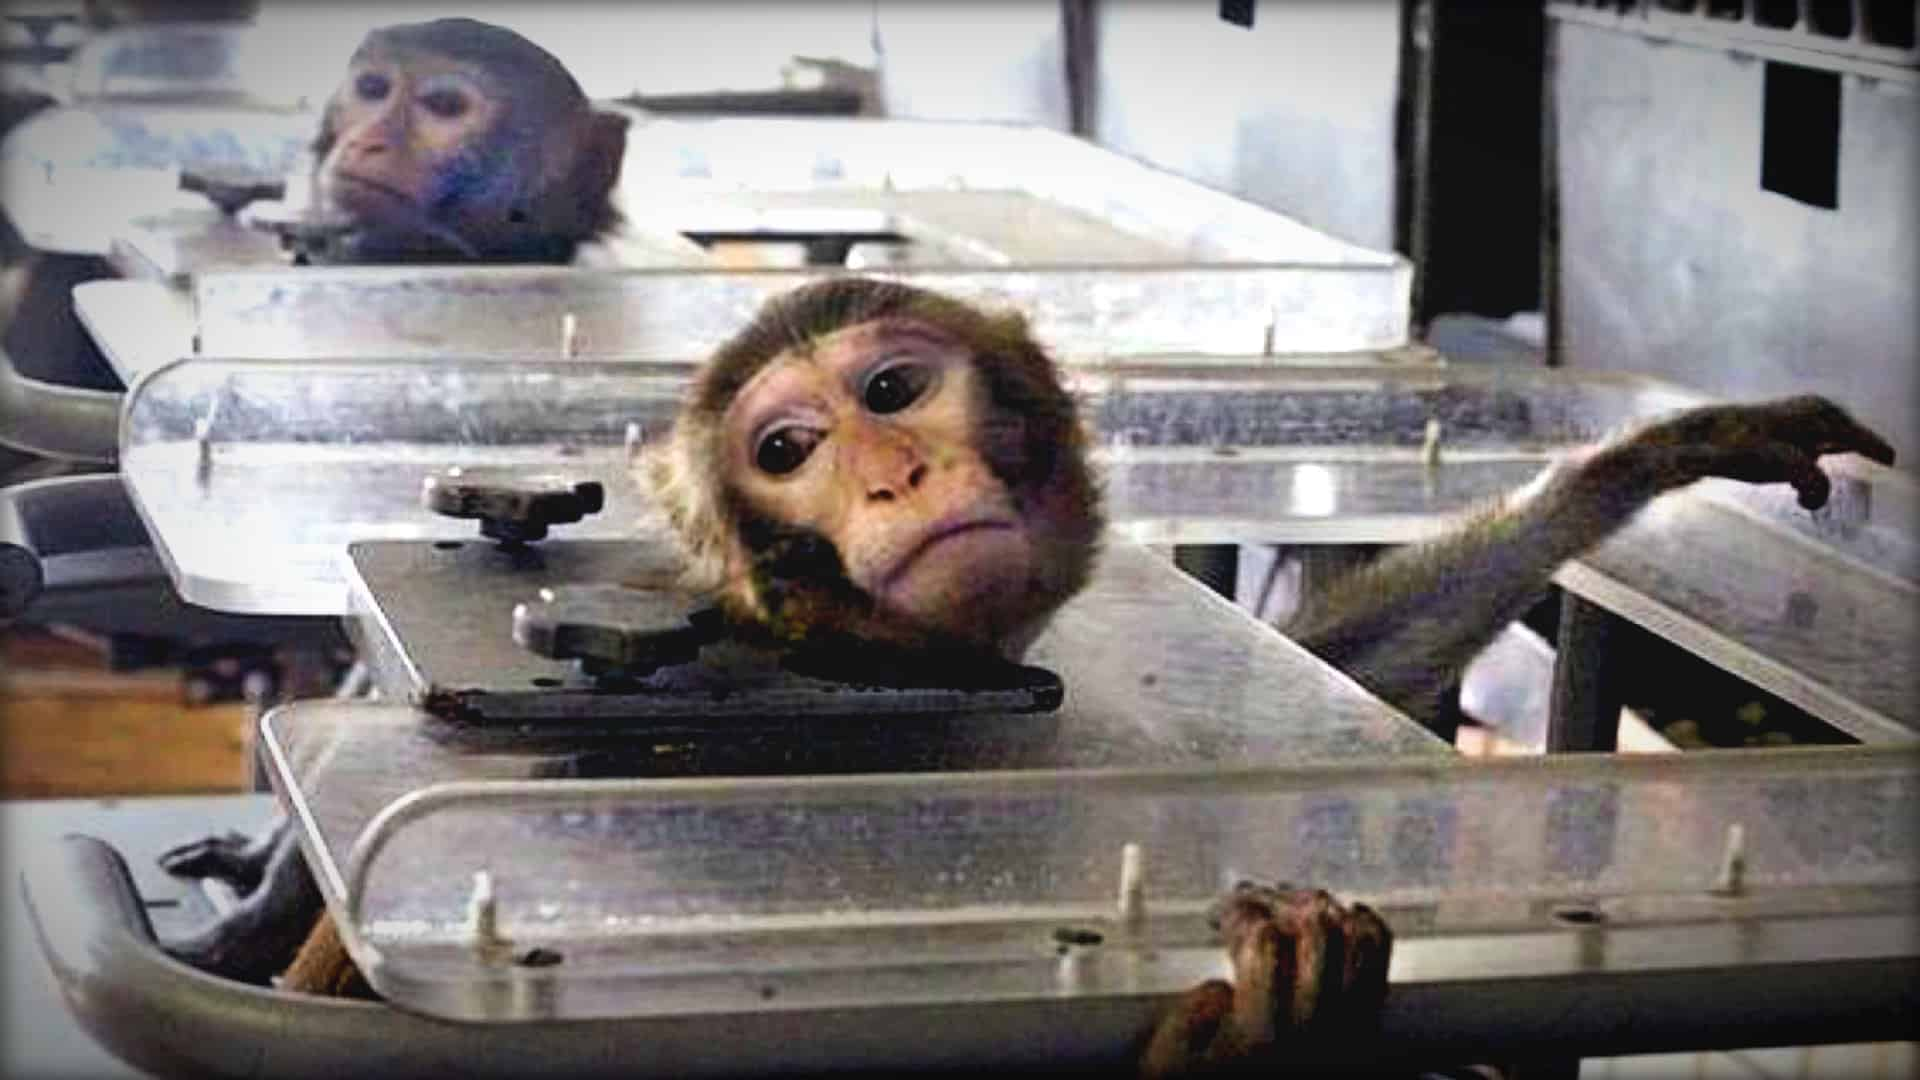 The image shows two small monkeys trapped in Perspex boxes. Their heads are poking through the top and a clamp is pressing against their necks to prevent them from moving their head.